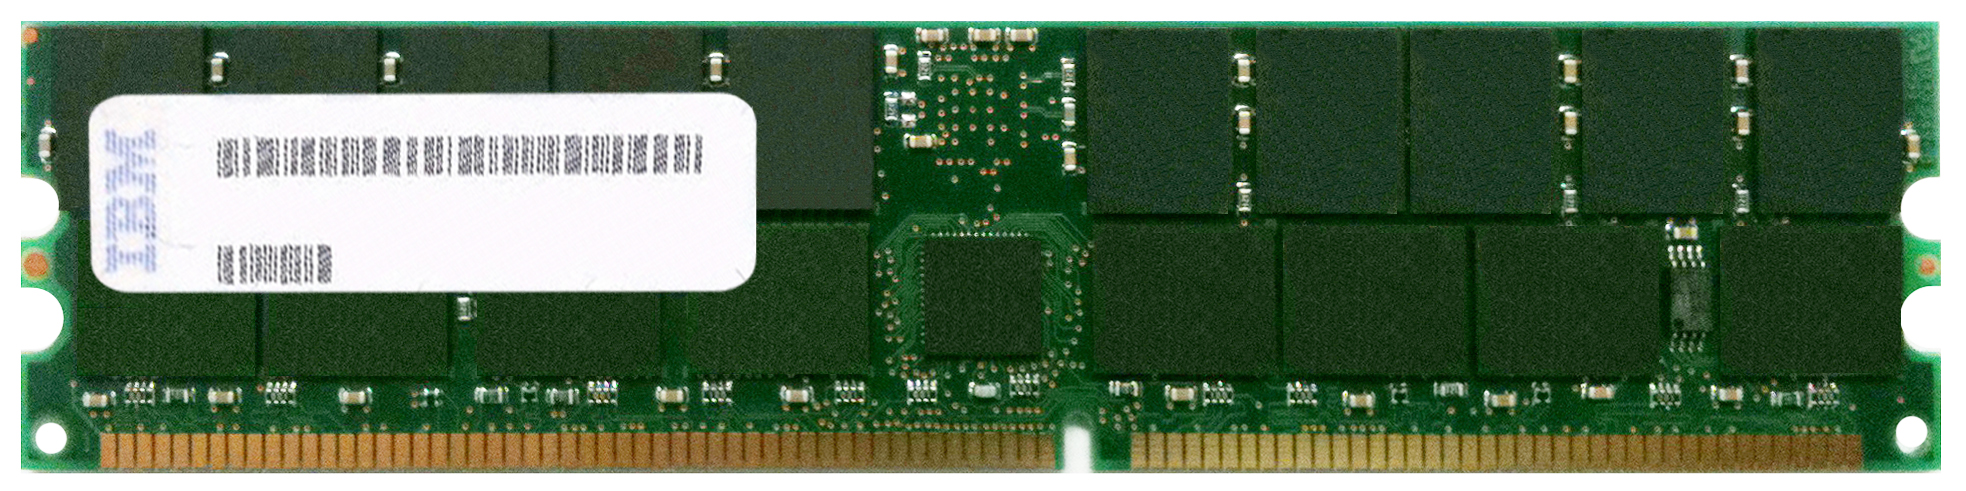 7893-9117 IBM Chipkill 4GB Kit (4 X 1GB) PC2-4200 DDR2-533MHz ECC Registered CL4 276-Pin DIMM Memory